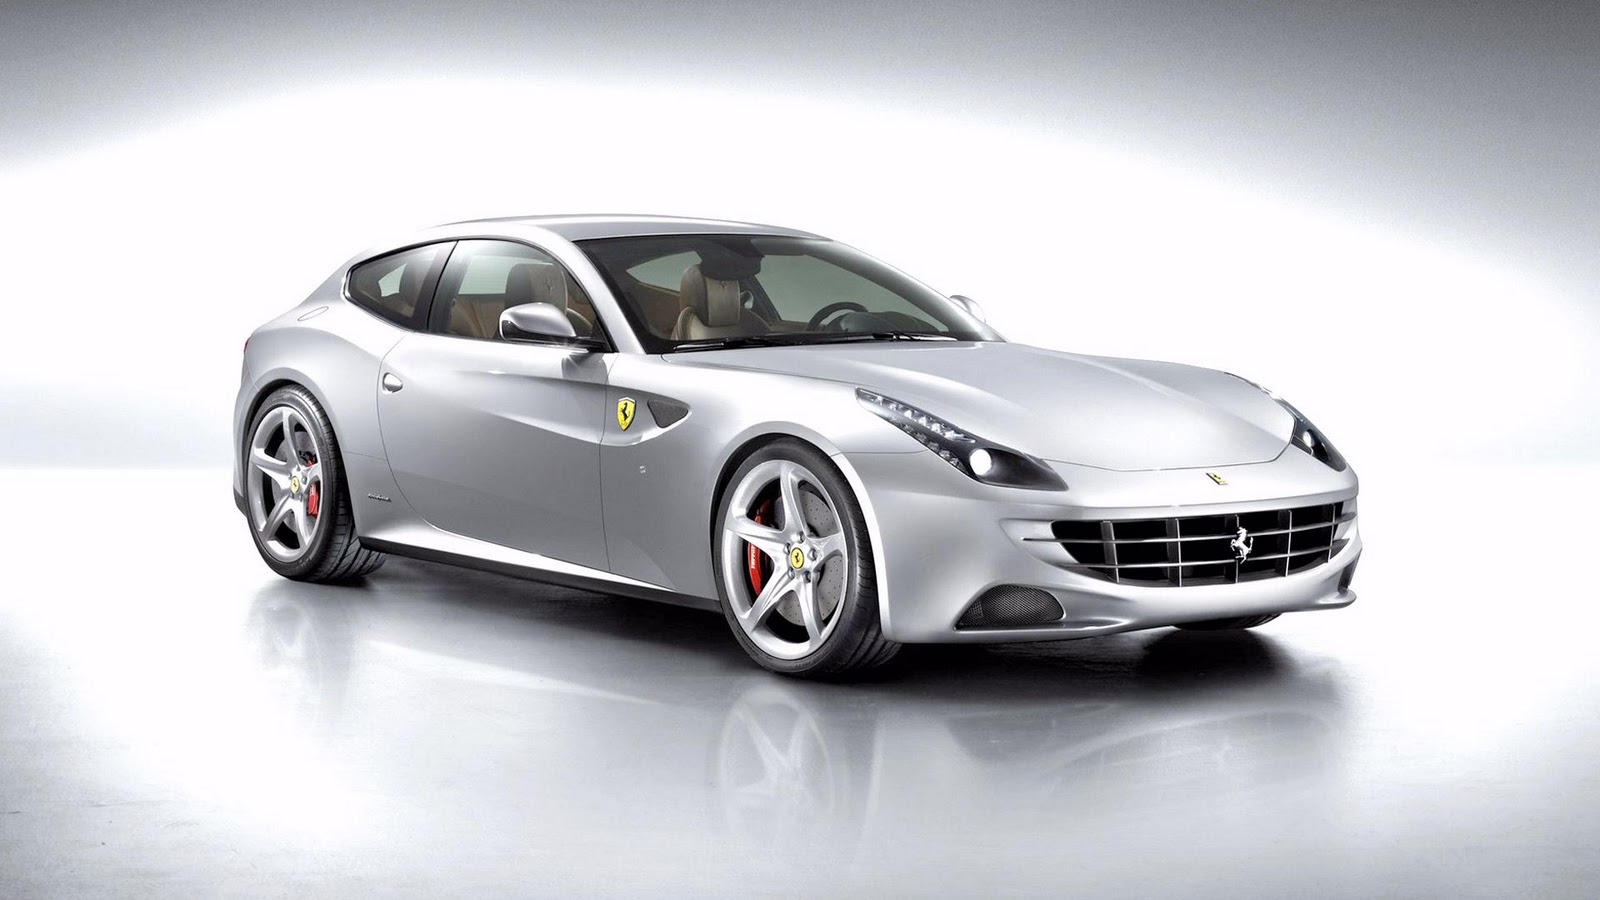 https://3.bp.blogspot.com/-oUnk-3VDzFM/TpVY_5AVfAI/AAAAAAAABQc/ZK6TIJLNCeE/s1600/2012_ferrari_wallpapers_car_1_wallpape.in.jpg